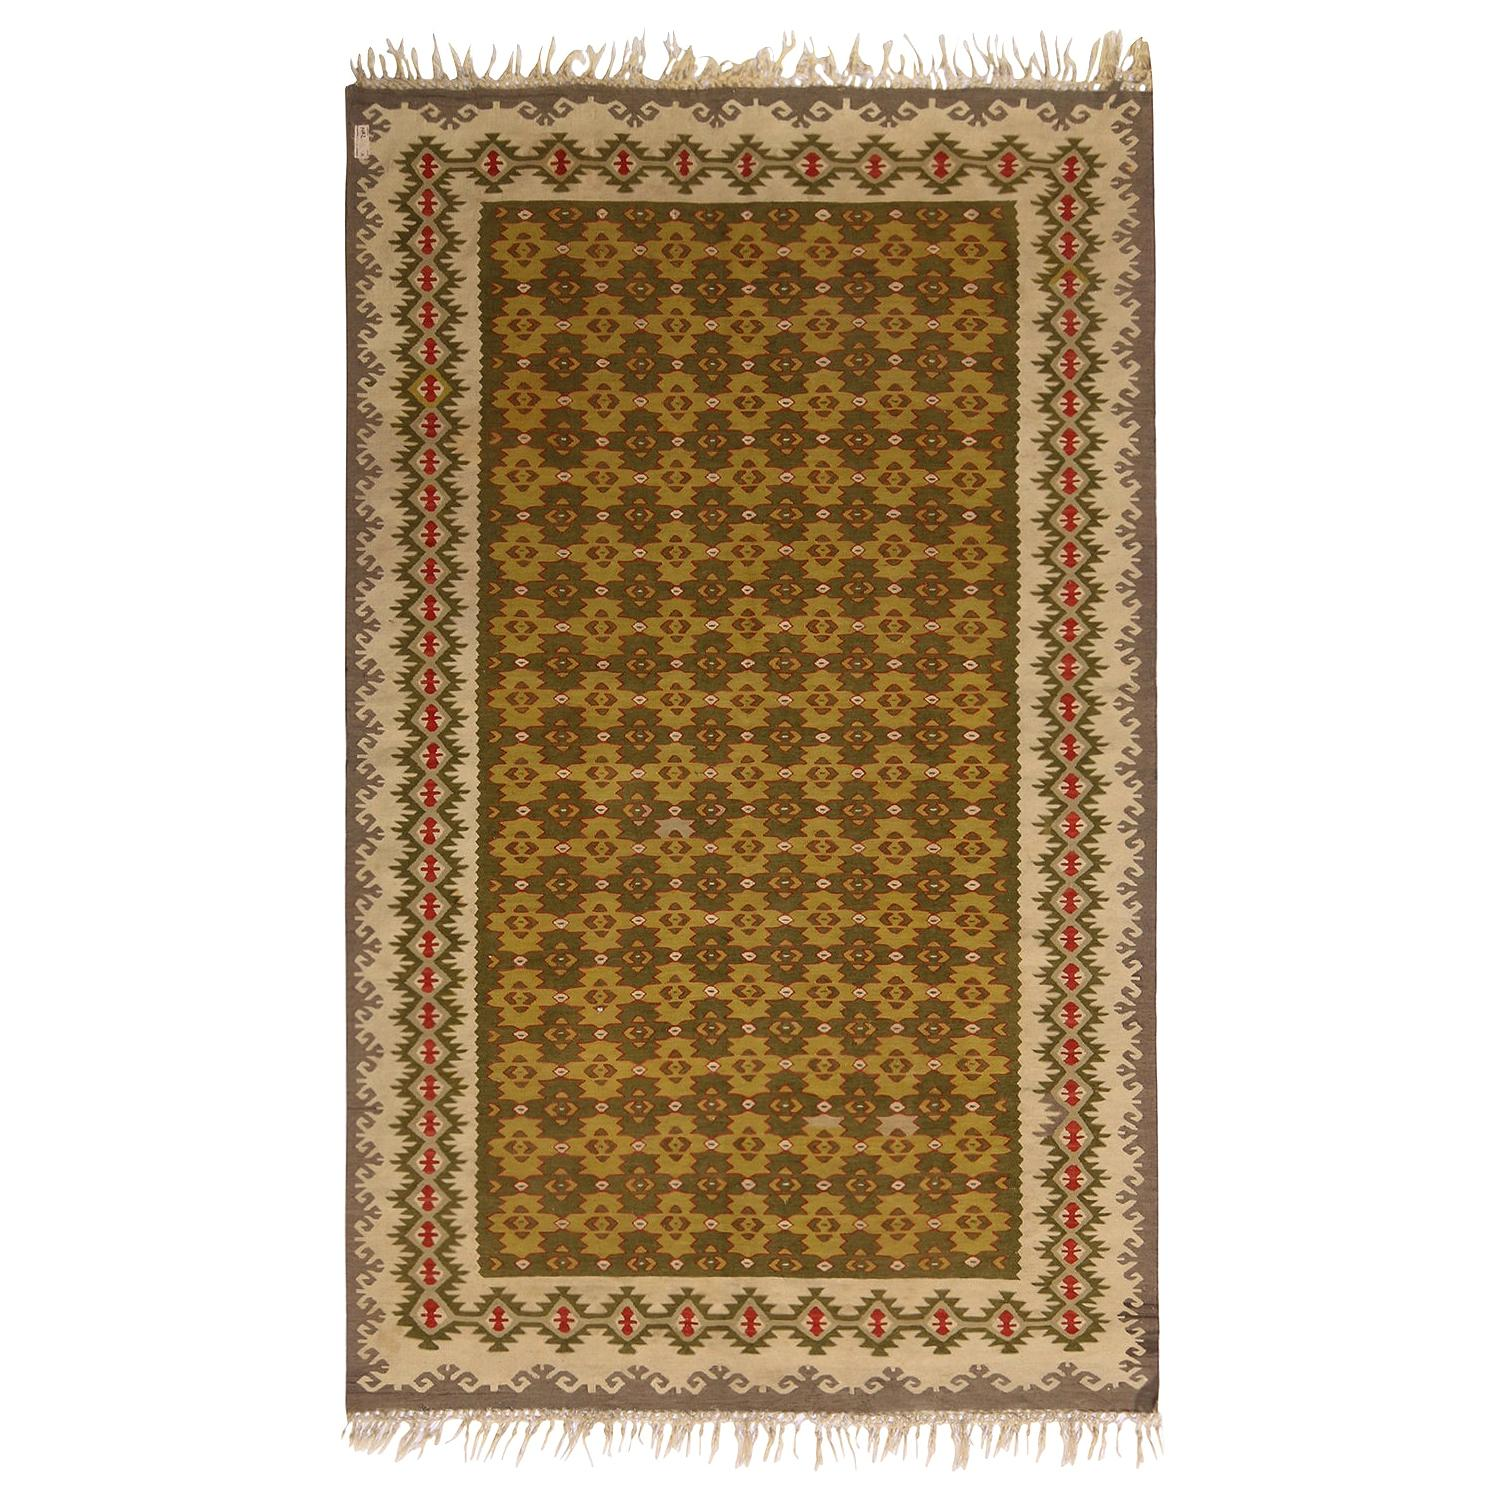 Vintage Midcentury Sarkoy Geometric Beige-Brown and Green Wool Kilim Rug